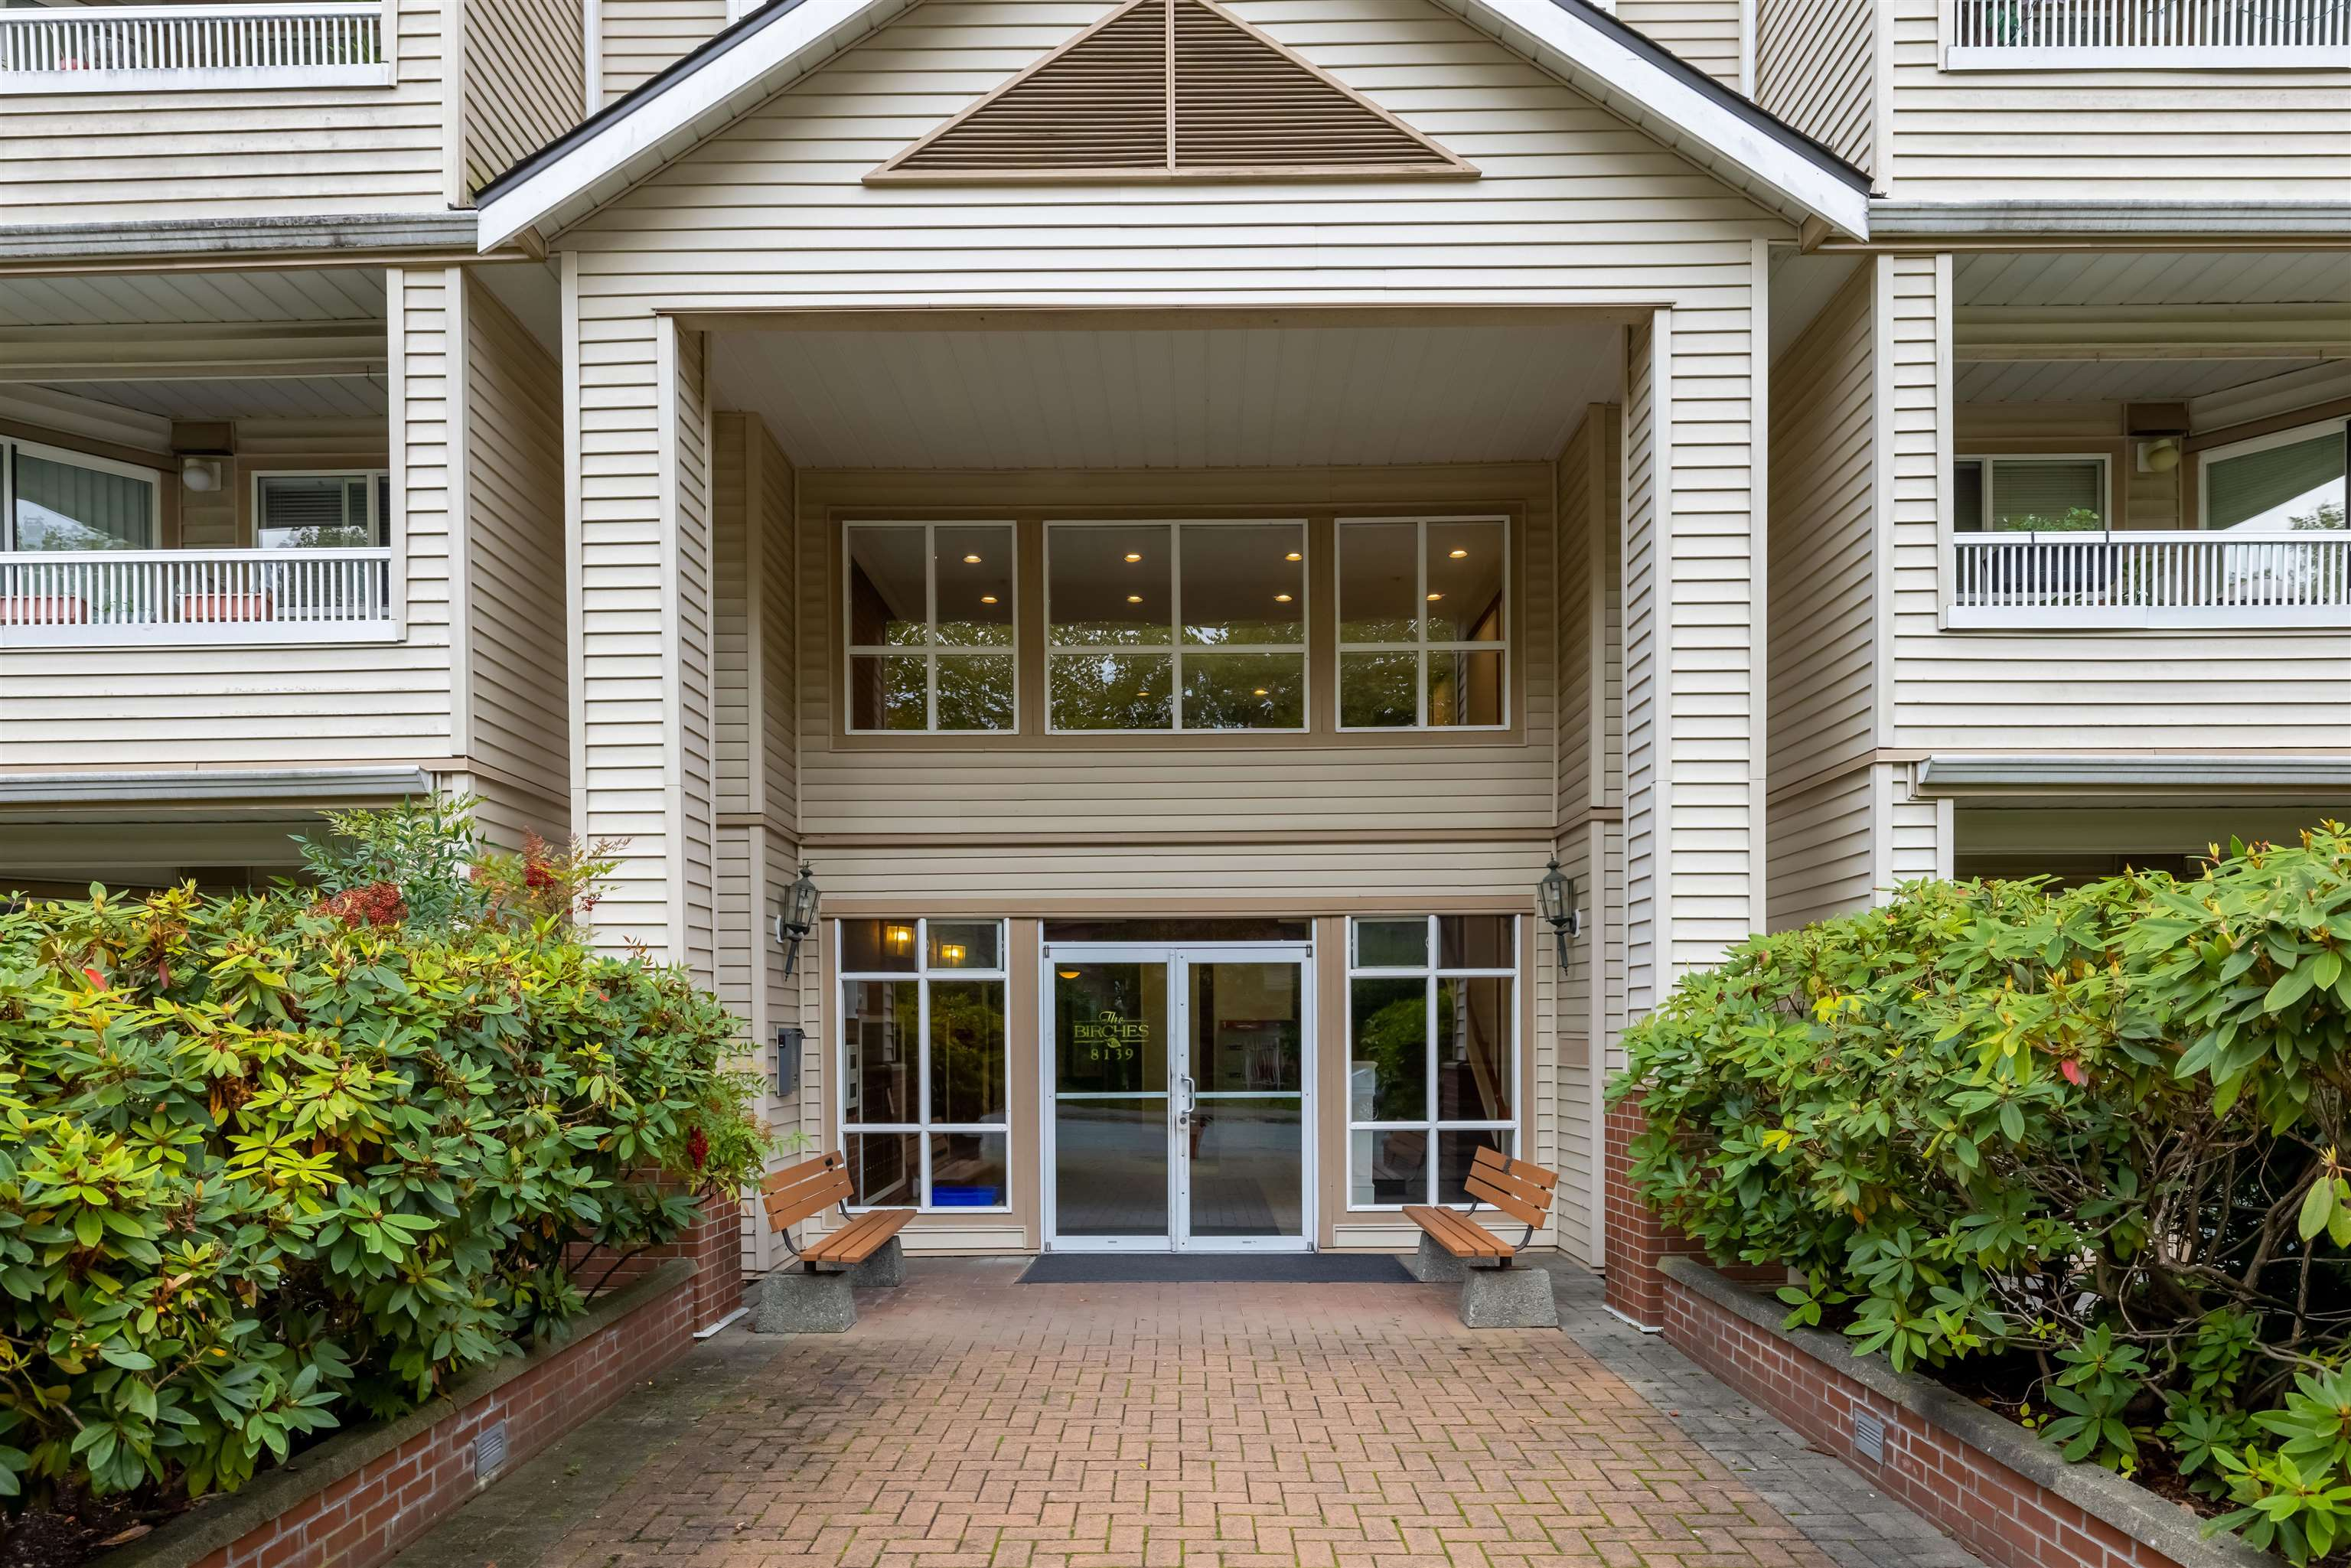 105 8139 121A STREET - Queen Mary Park Surrey Apartment/Condo for sale, 2 Bedrooms (R2623168) - #30